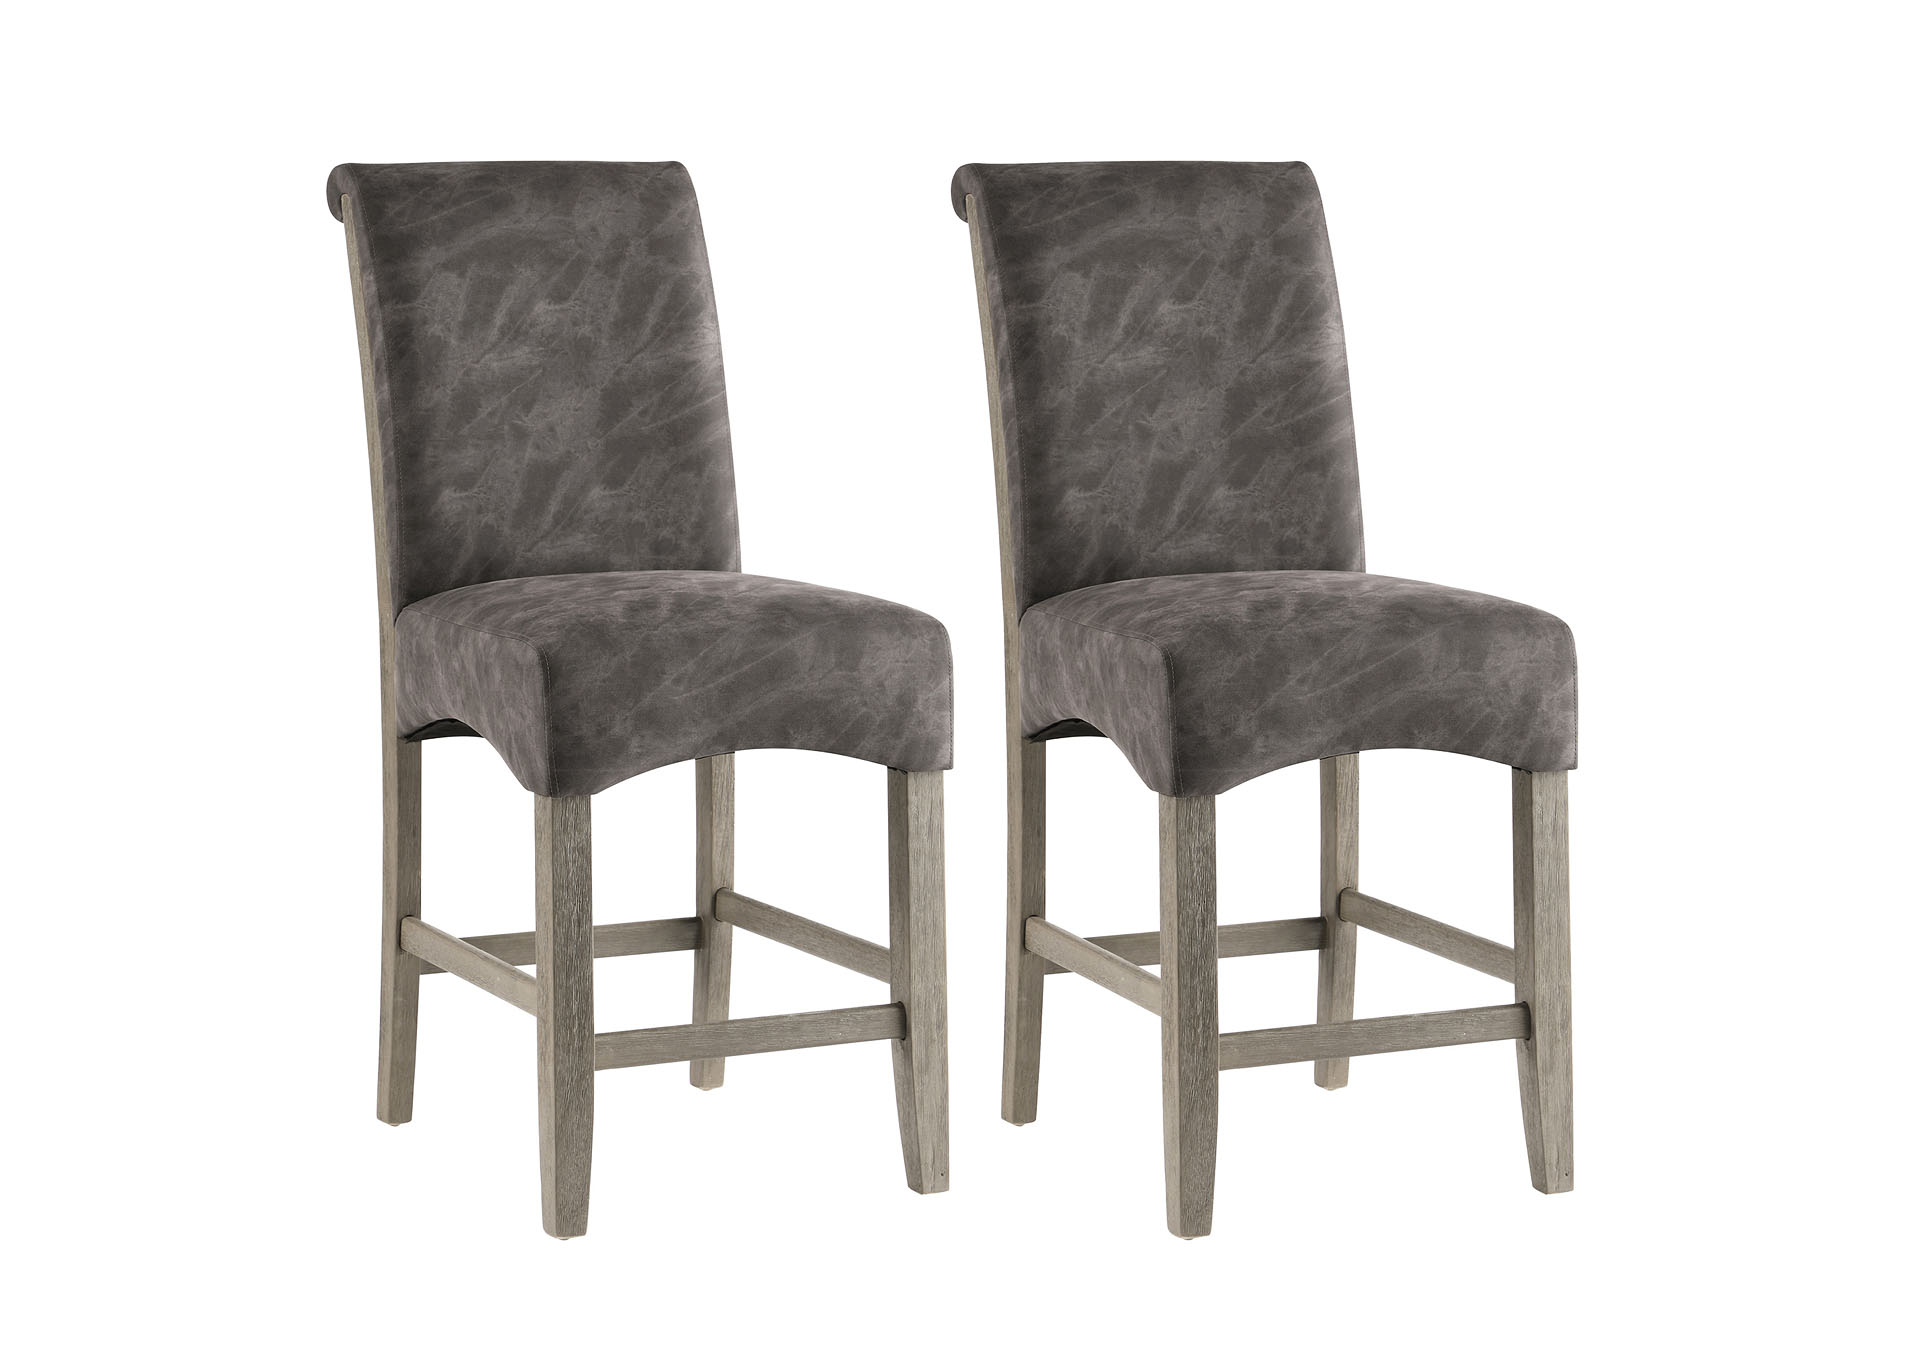 Marla Marble Grey Roll Back Parson Counter Stool (Set of 2),Chintaly Imports